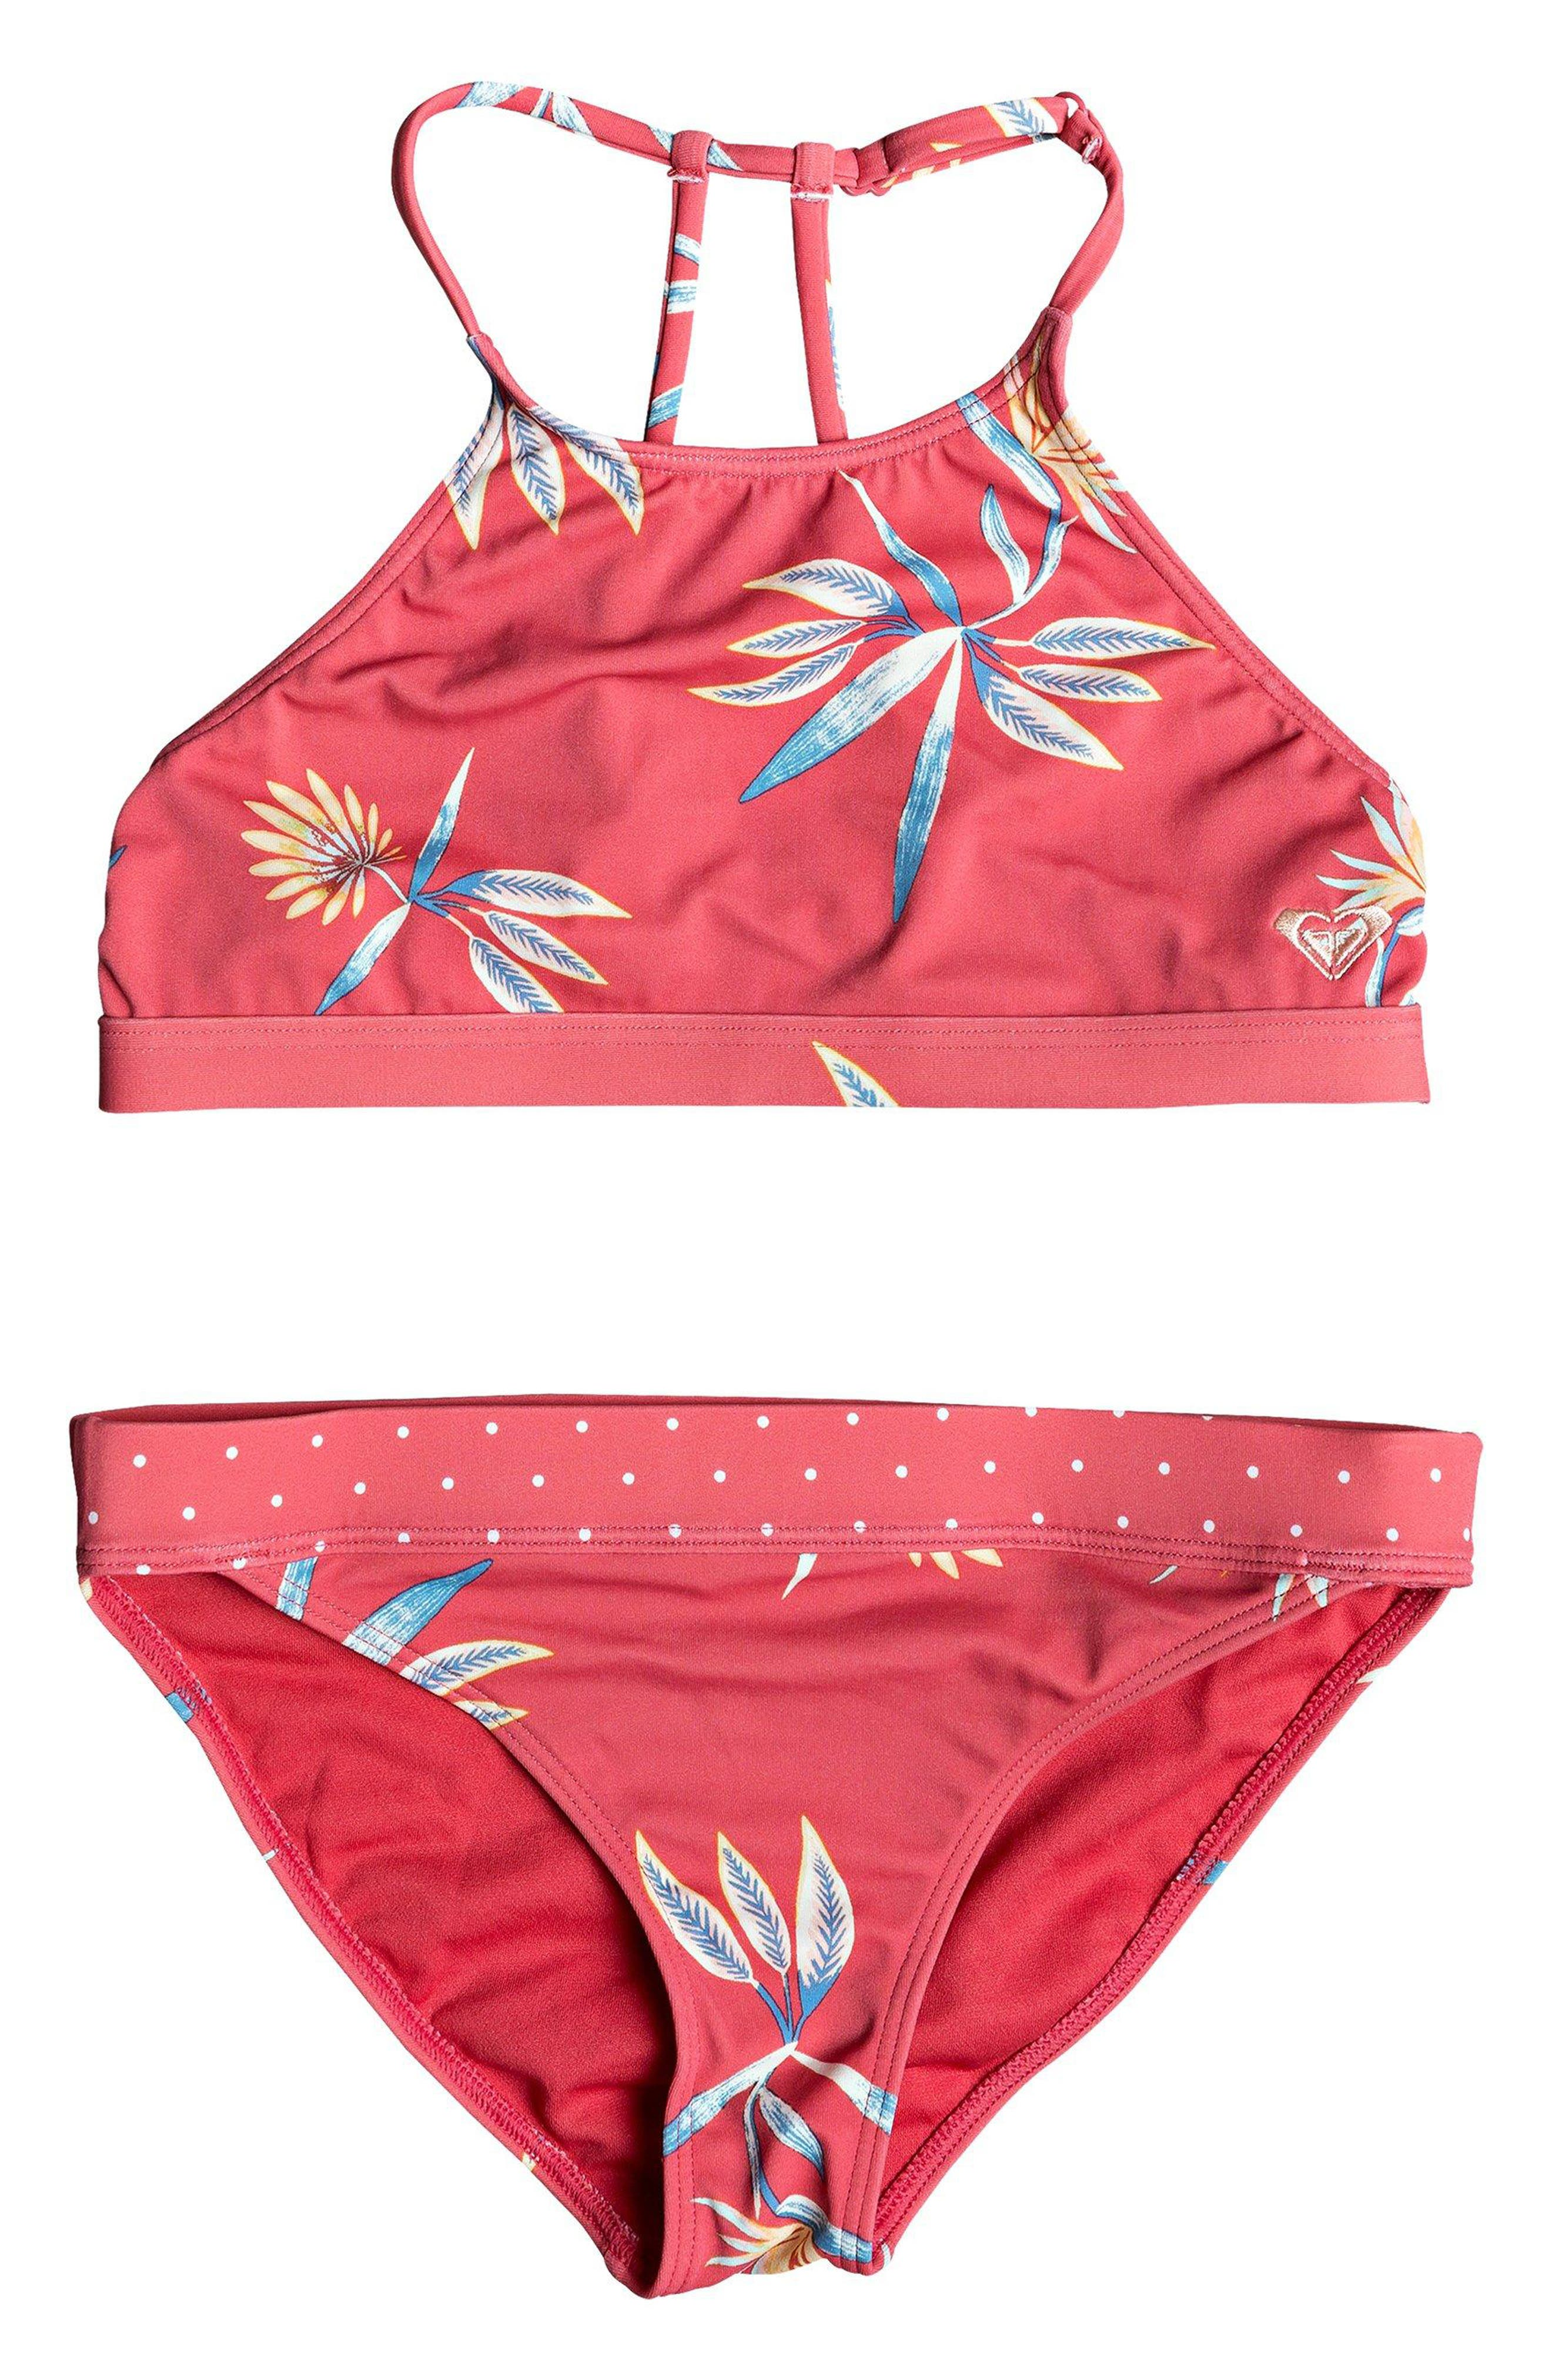 Folky Way Floral & Dot Two-Piece Swimsuit, Main, color, CHRYSANTHEMUM ROUGH FLOWERS